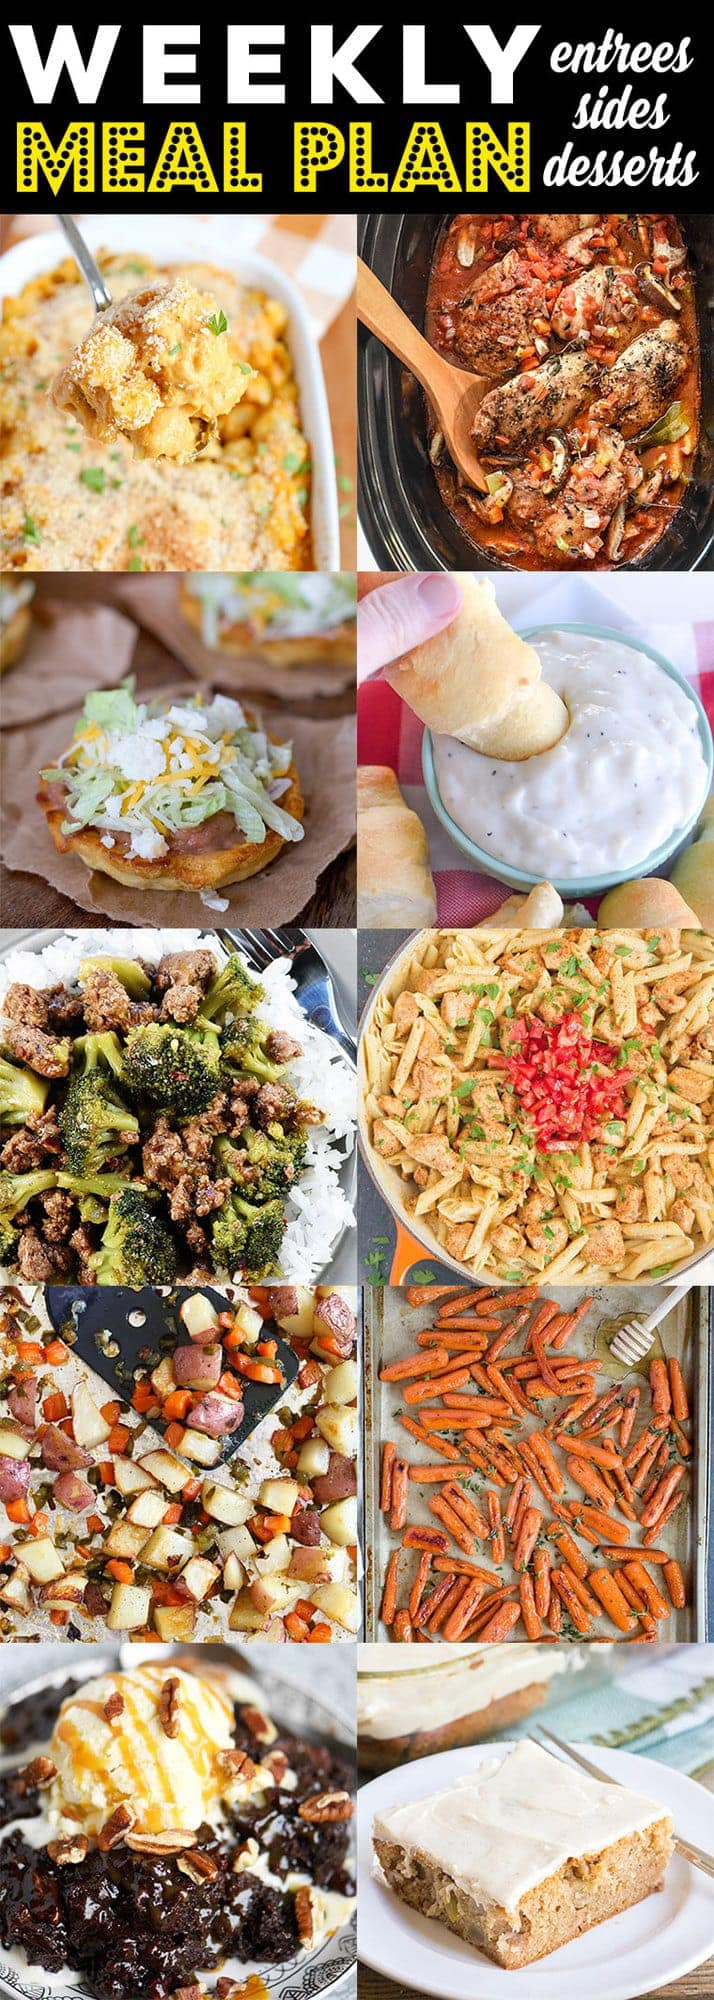 Weekly Meal Plan with all kinds of dishes to satisfy your family from Pumpkin Mac & Cheese to Cajun Pasta to roasted carrots.